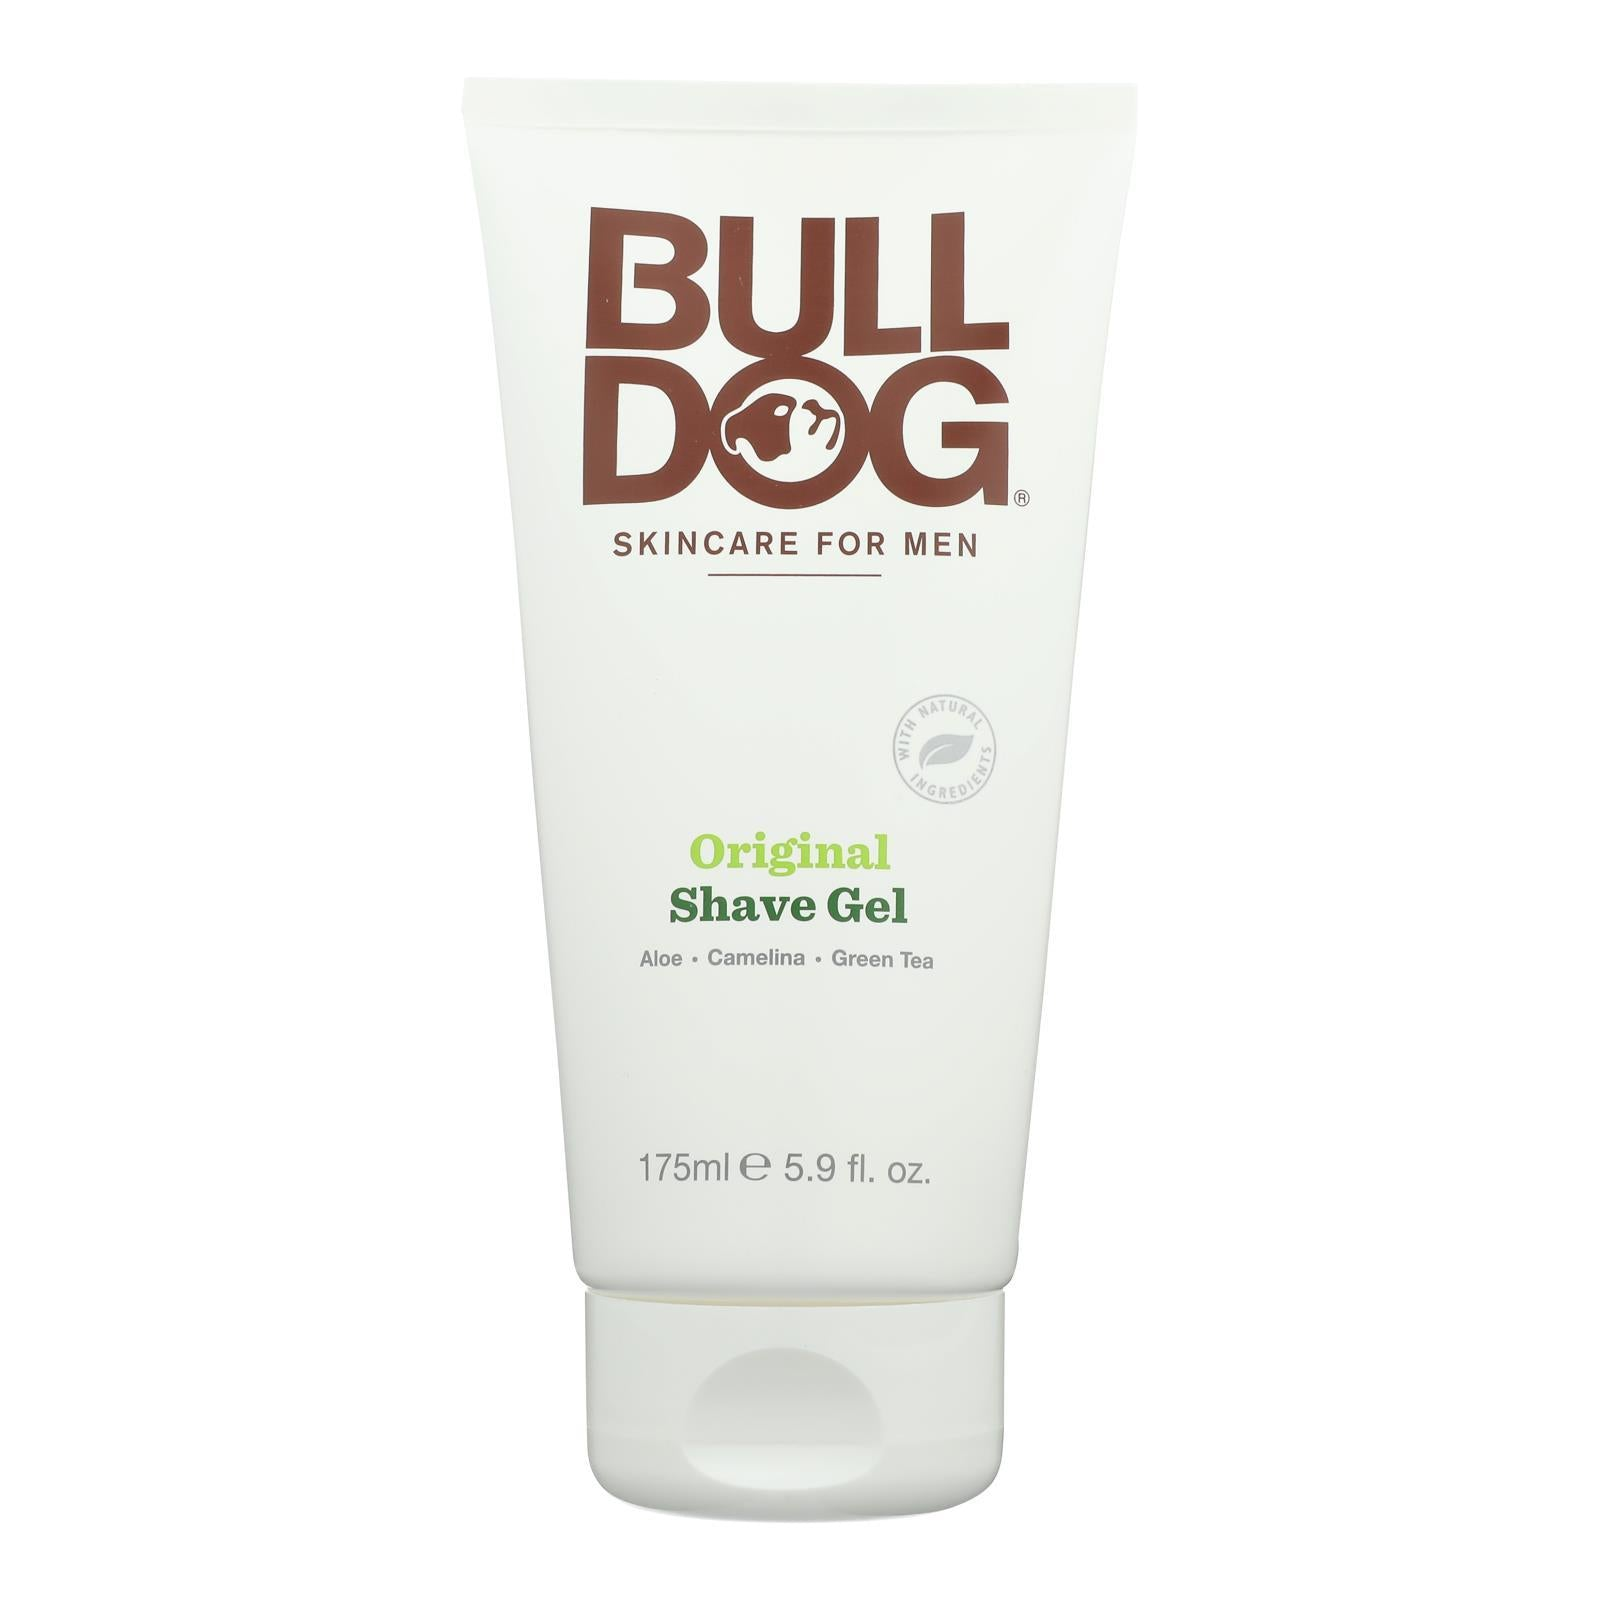 Bulldog Natural Skincare - Shave Gel - Original - 5.9 Fl Oz - BeeGreen